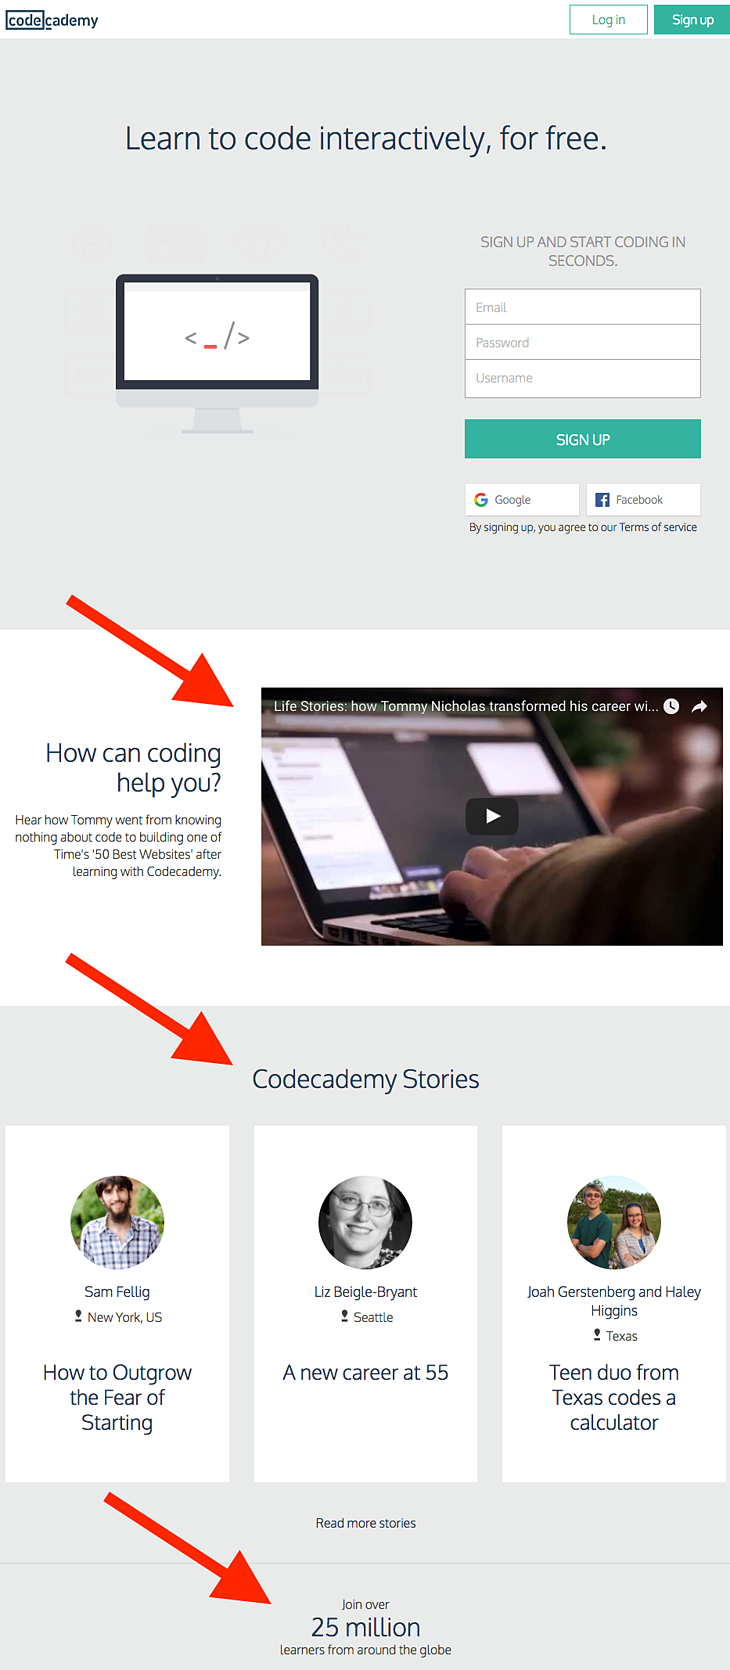 codecademy-social-proof-homepage.png